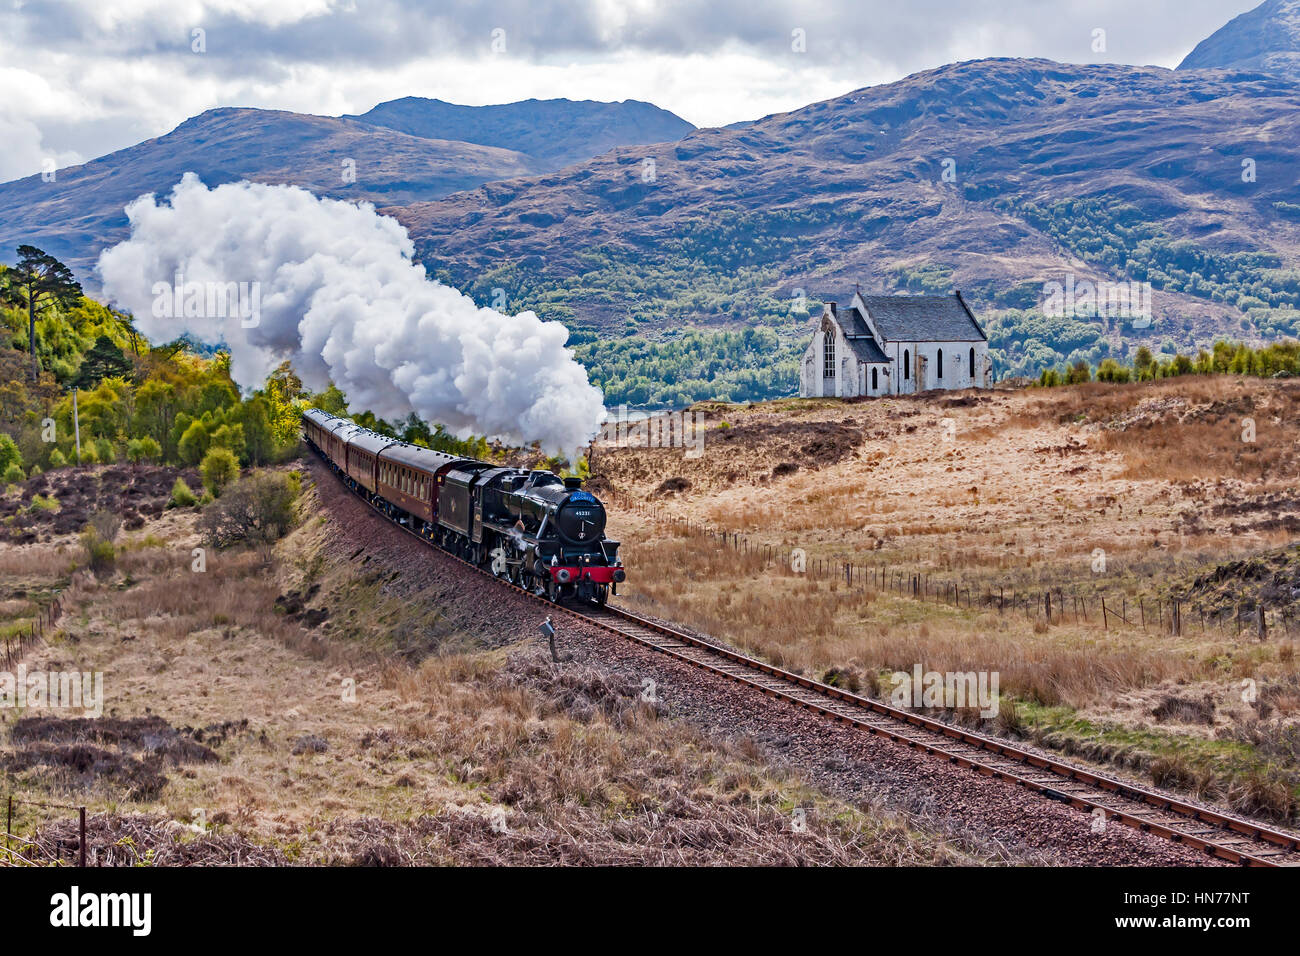 Stanier Class 5 4-6-0 No. 45231 steam engine powers The Jacobite past the church at Polnish West Highlands of Scotland - Stock Image